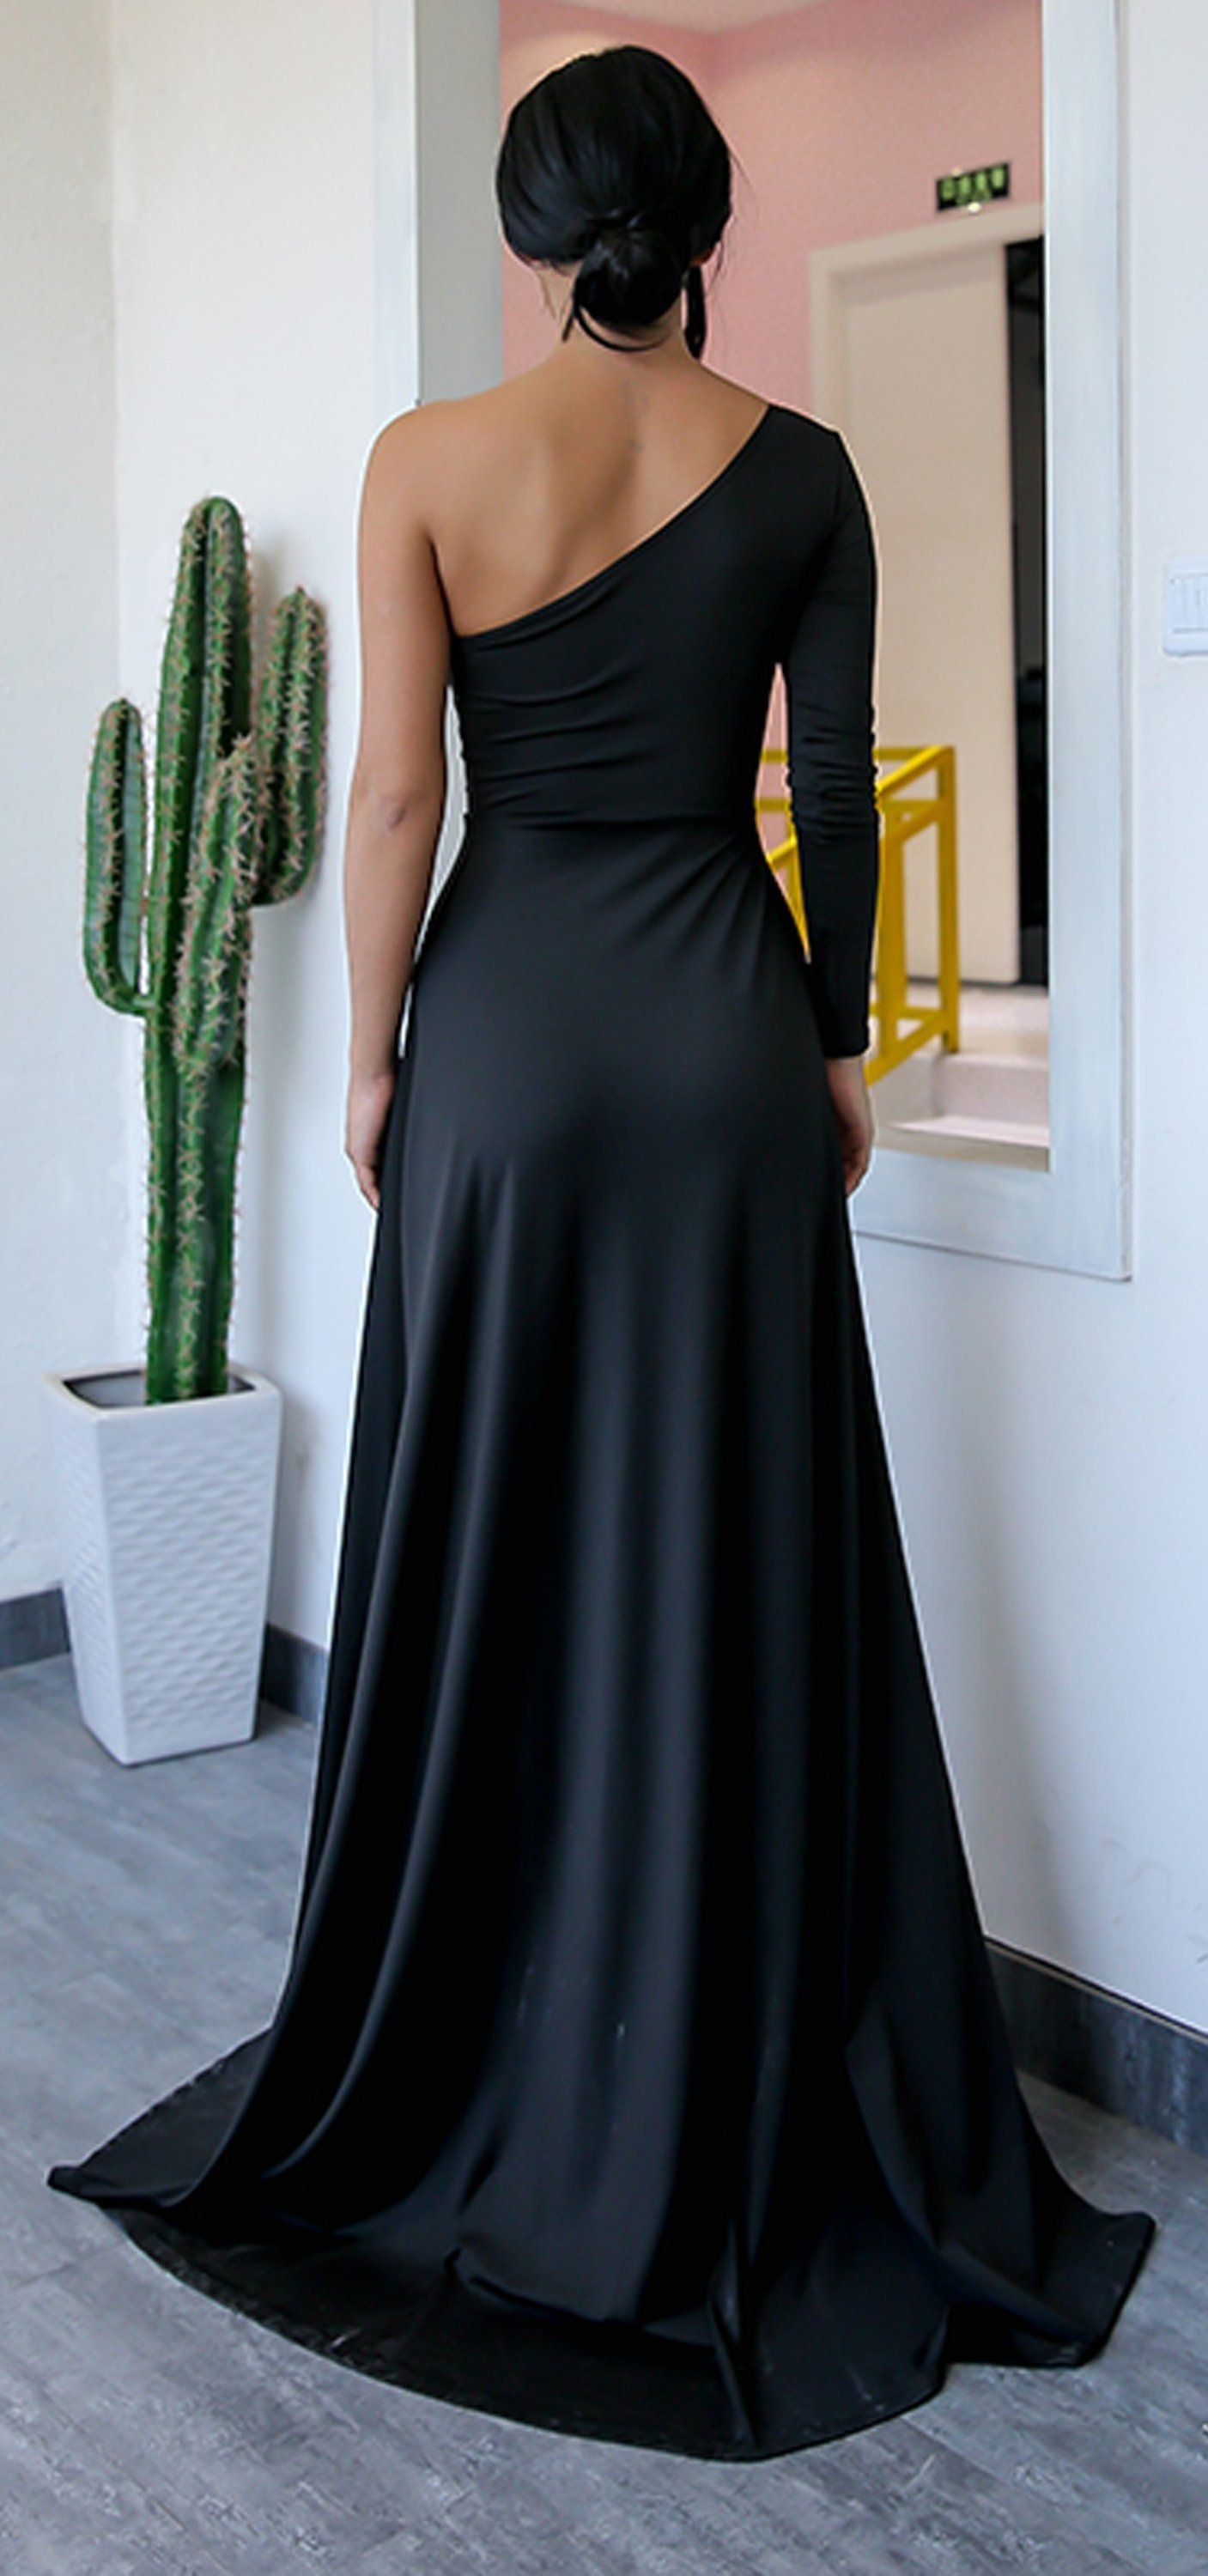 a4b342f91c83 Classy Simple Long Prom Dresses with Sleeves in Black - One off the  Shoulder Asymmetrical Tight Fitted Mermaid Maxi Gown Dress with Slit for  Graduation ...